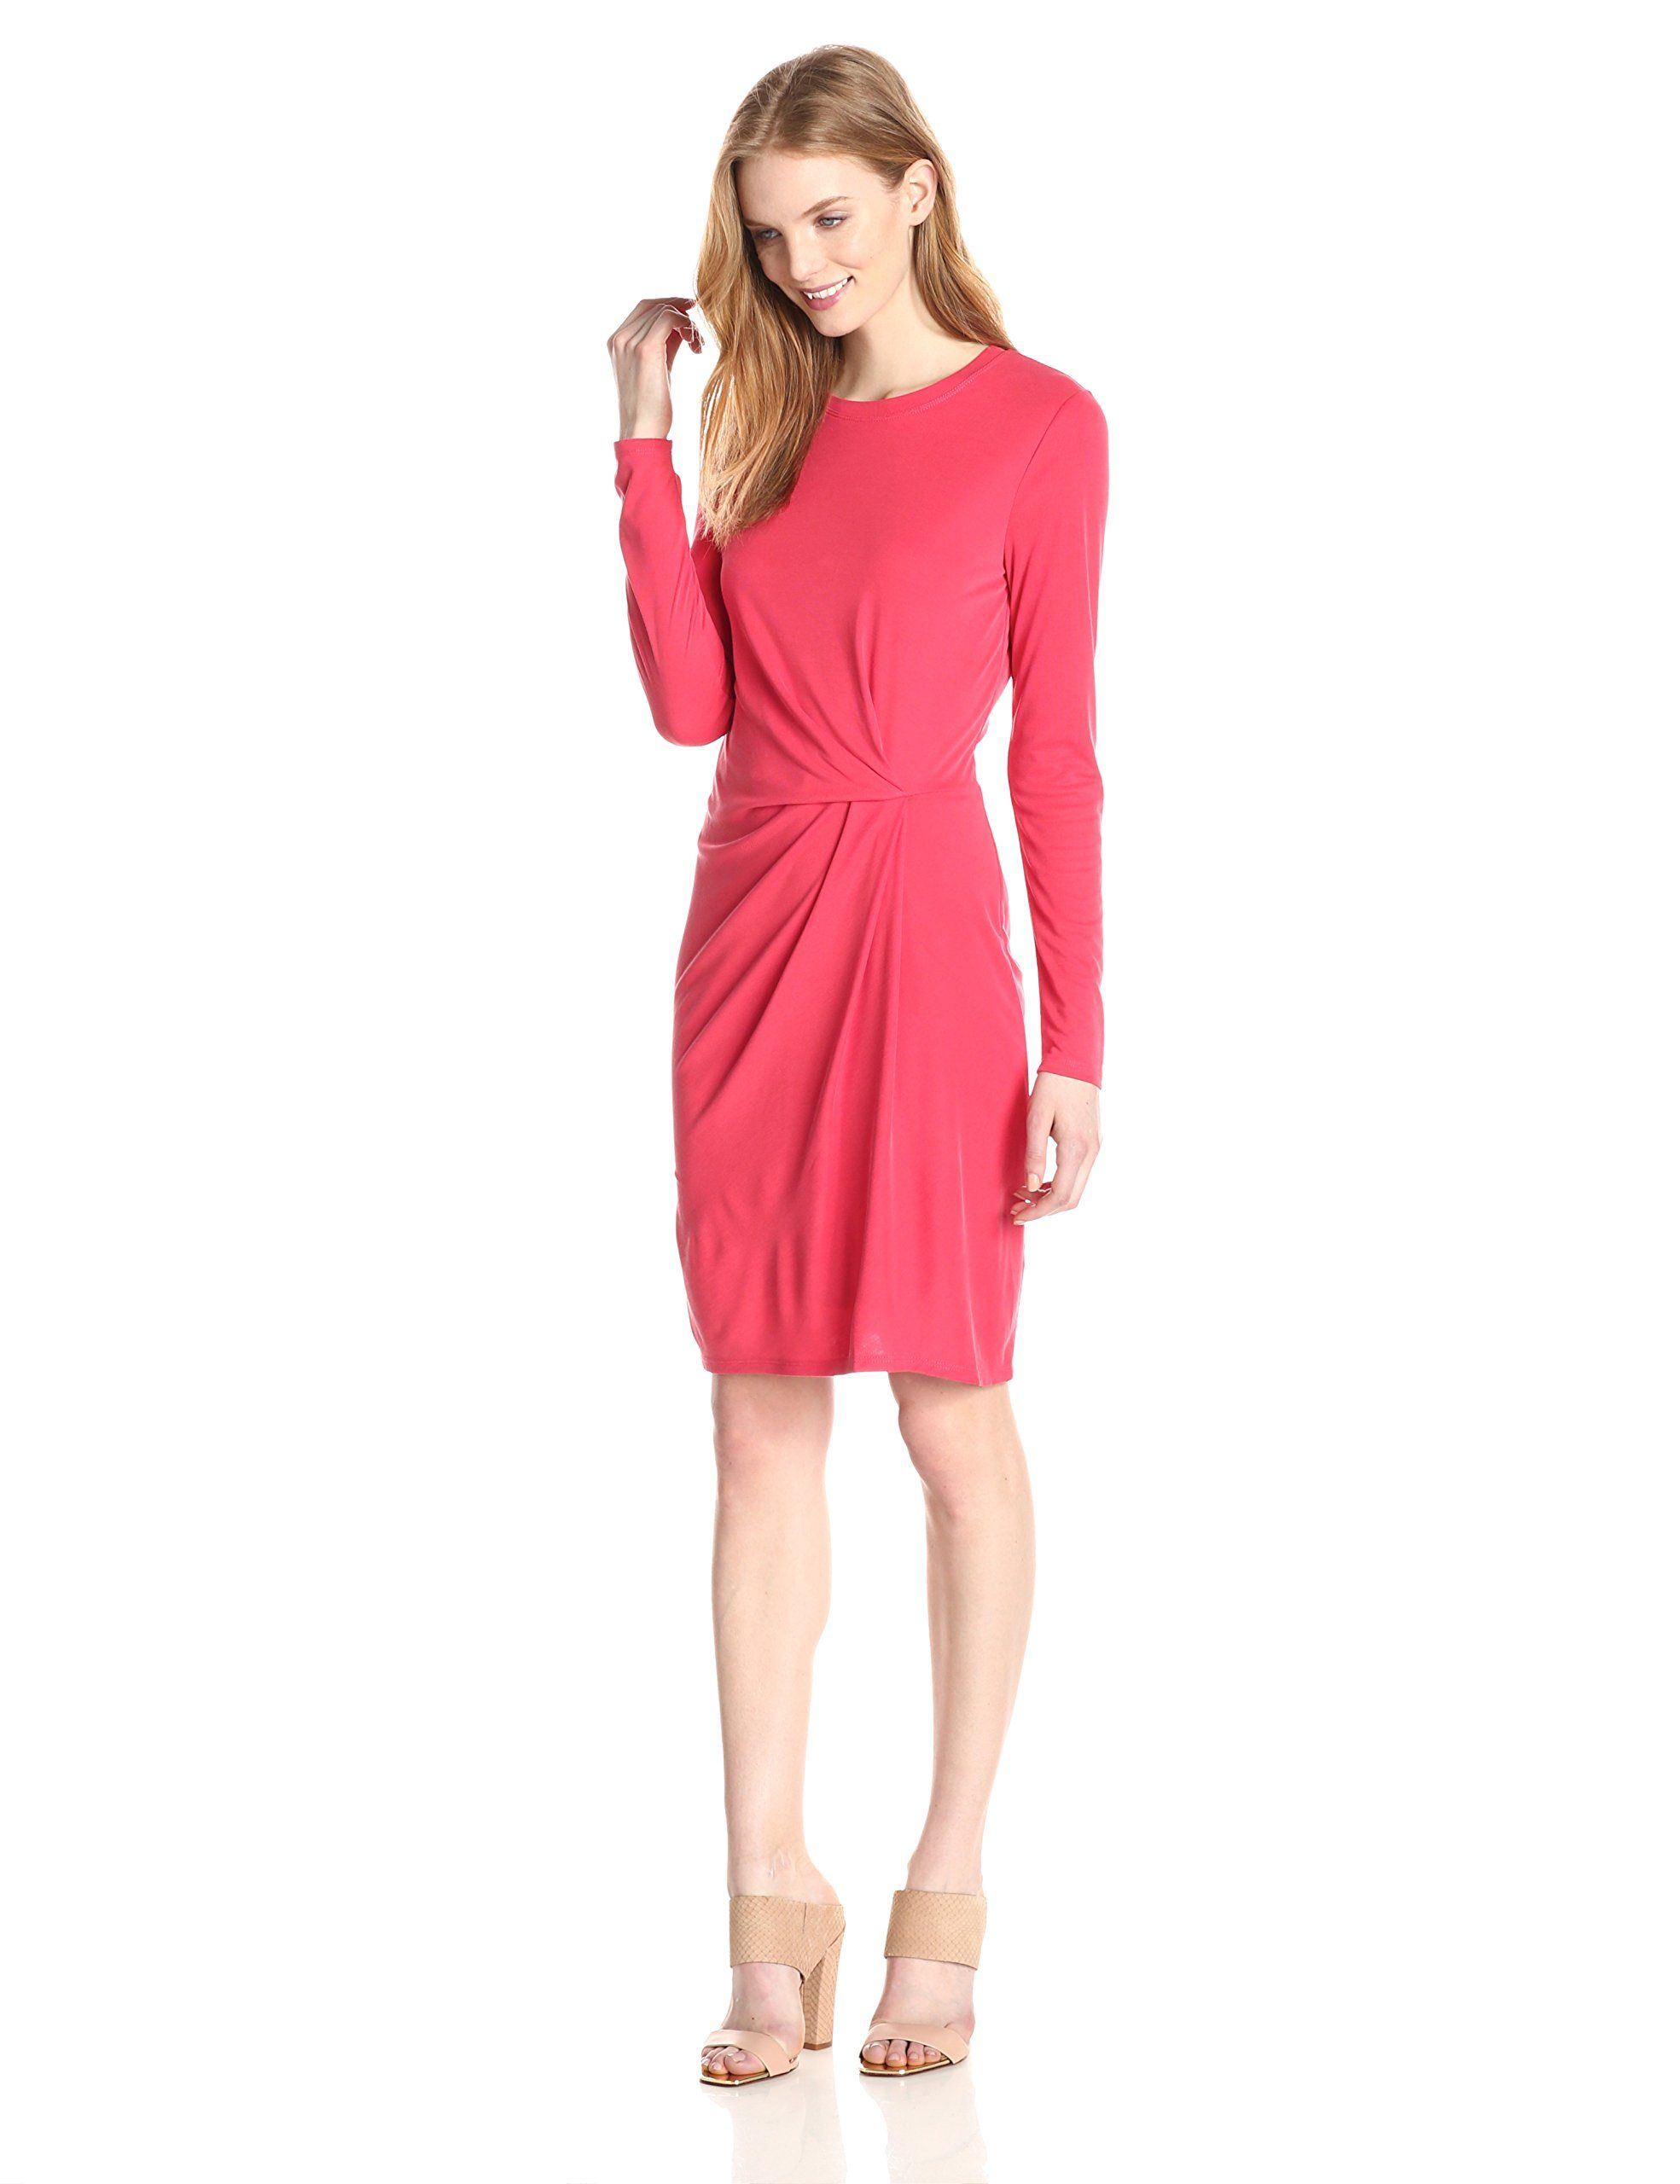 Bcbgmaxazria womenus roxie long sleeve dress with front tuck